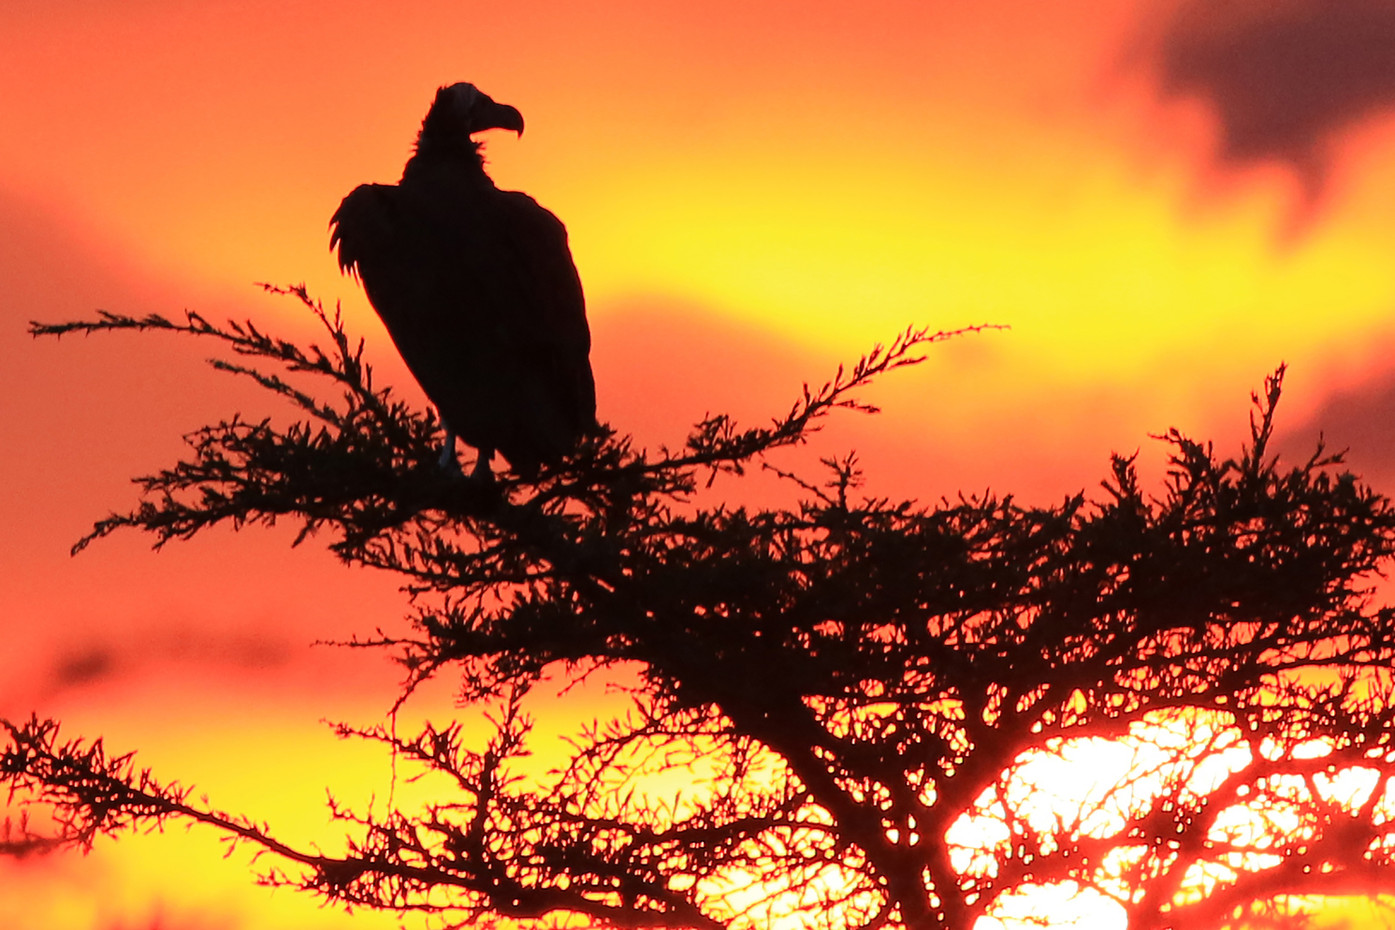 Lappet-faced Vulture at sunset in the Serengeti NP, Tanzania